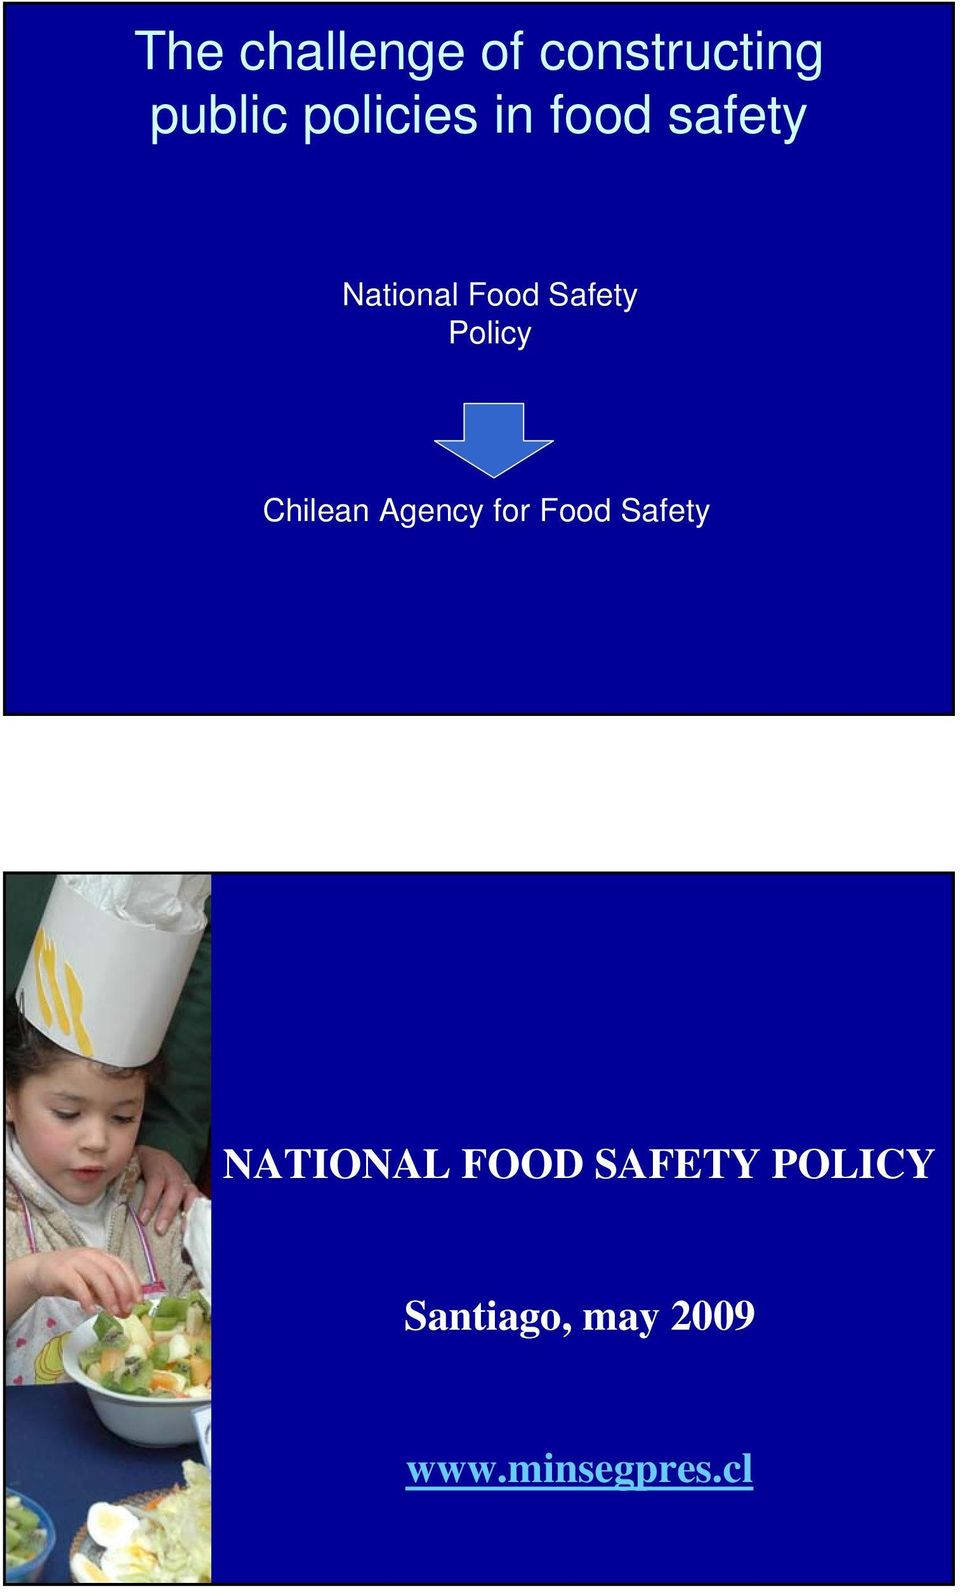 Chilean Agency for Food Safety NATIONAL FOOD